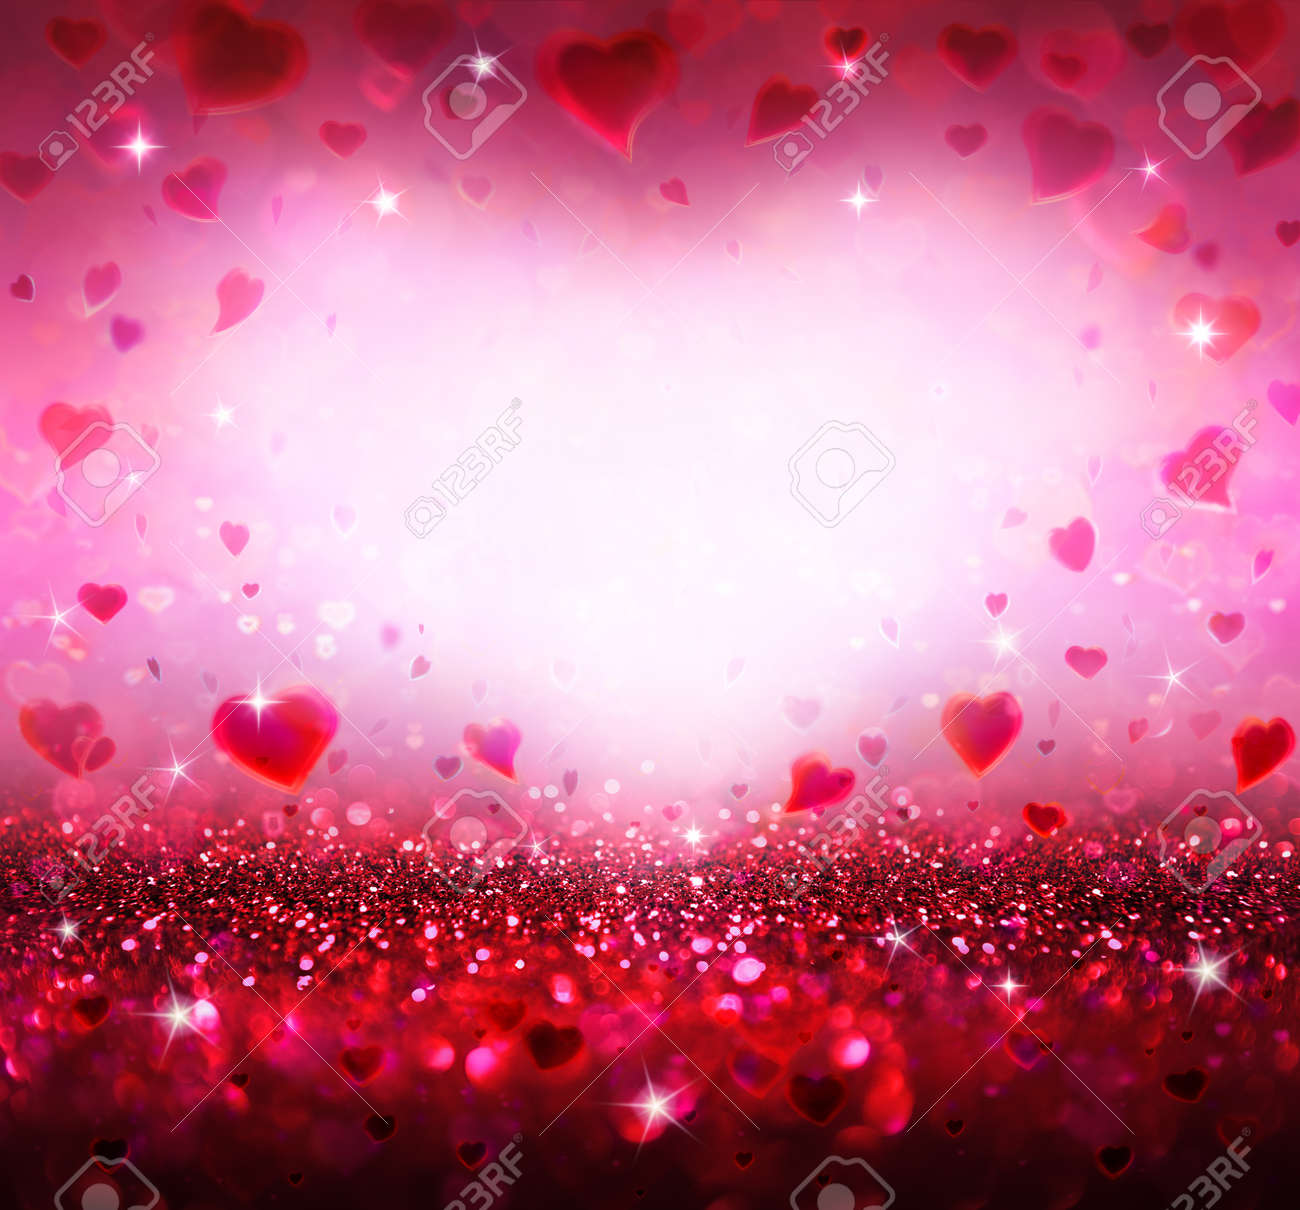 Valentines Background With Hearts Flying Stock Photo Picture And